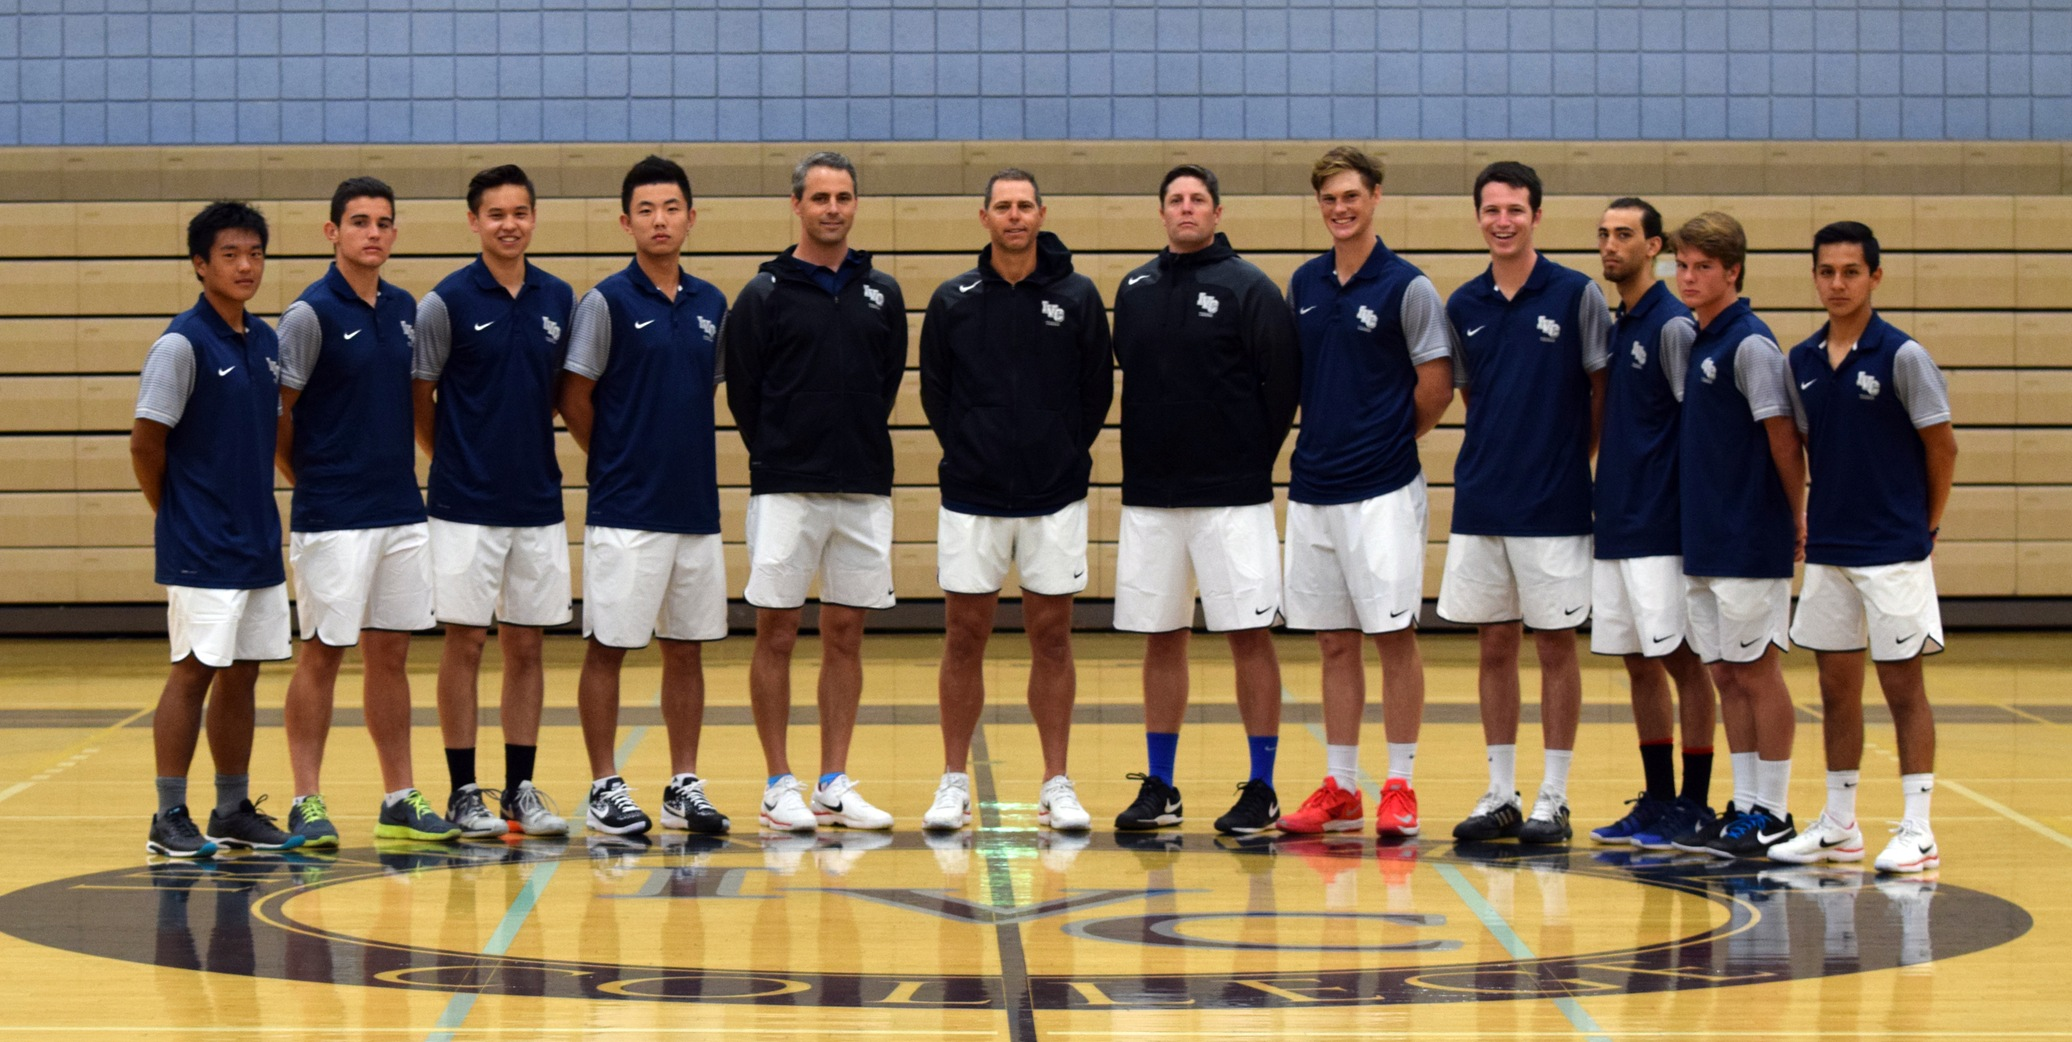 Men's tennis players wrap up season with strong Ojai tourney